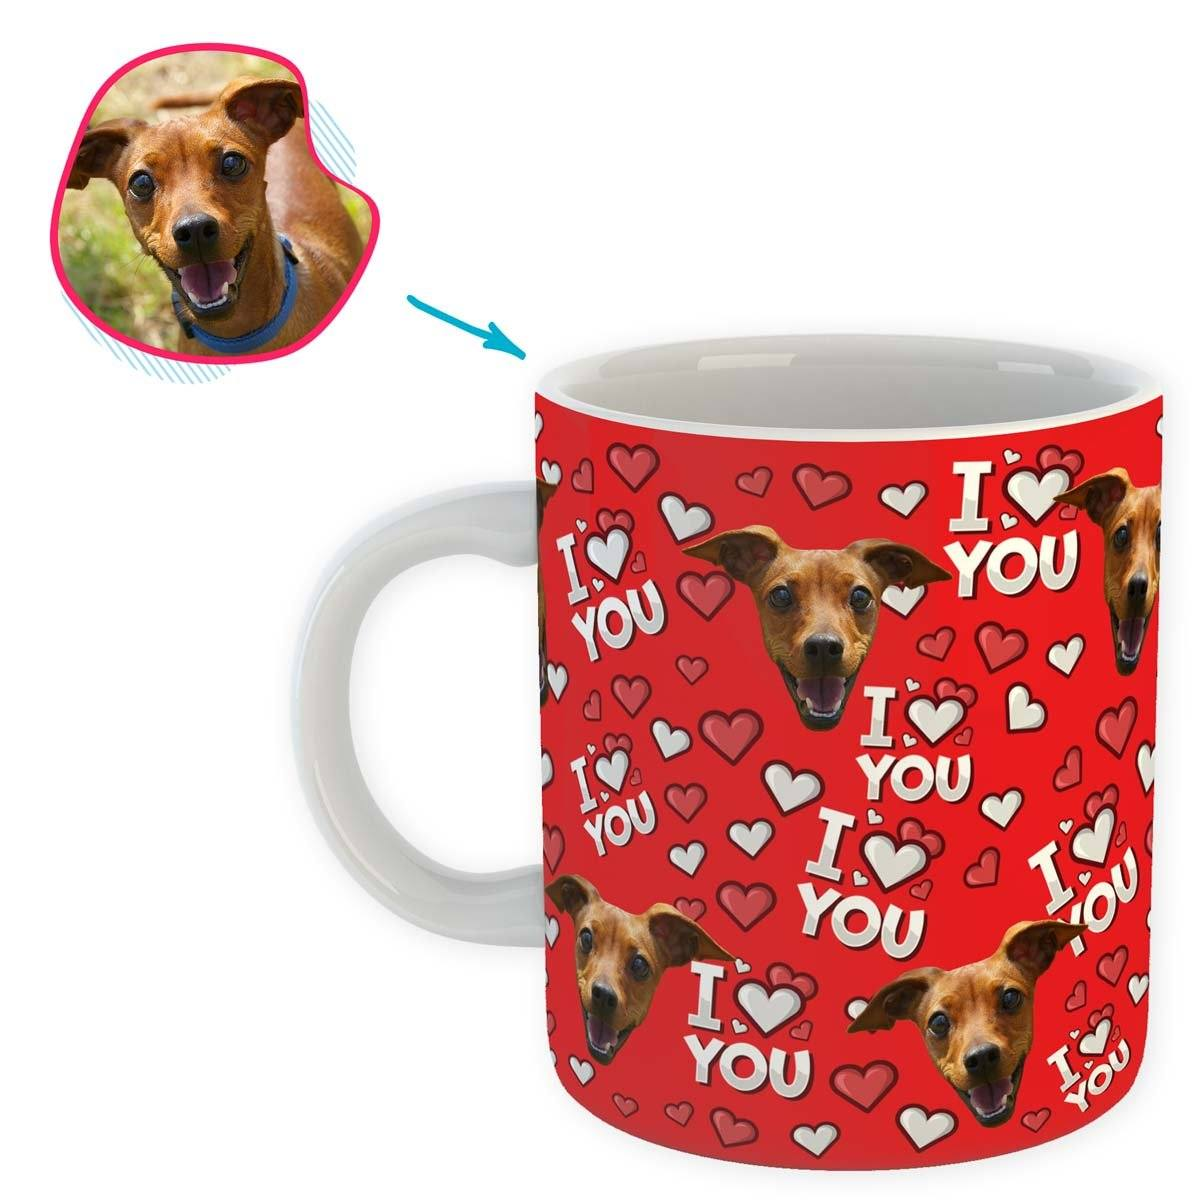 red I Love You mug personalized with photo of face printed on it